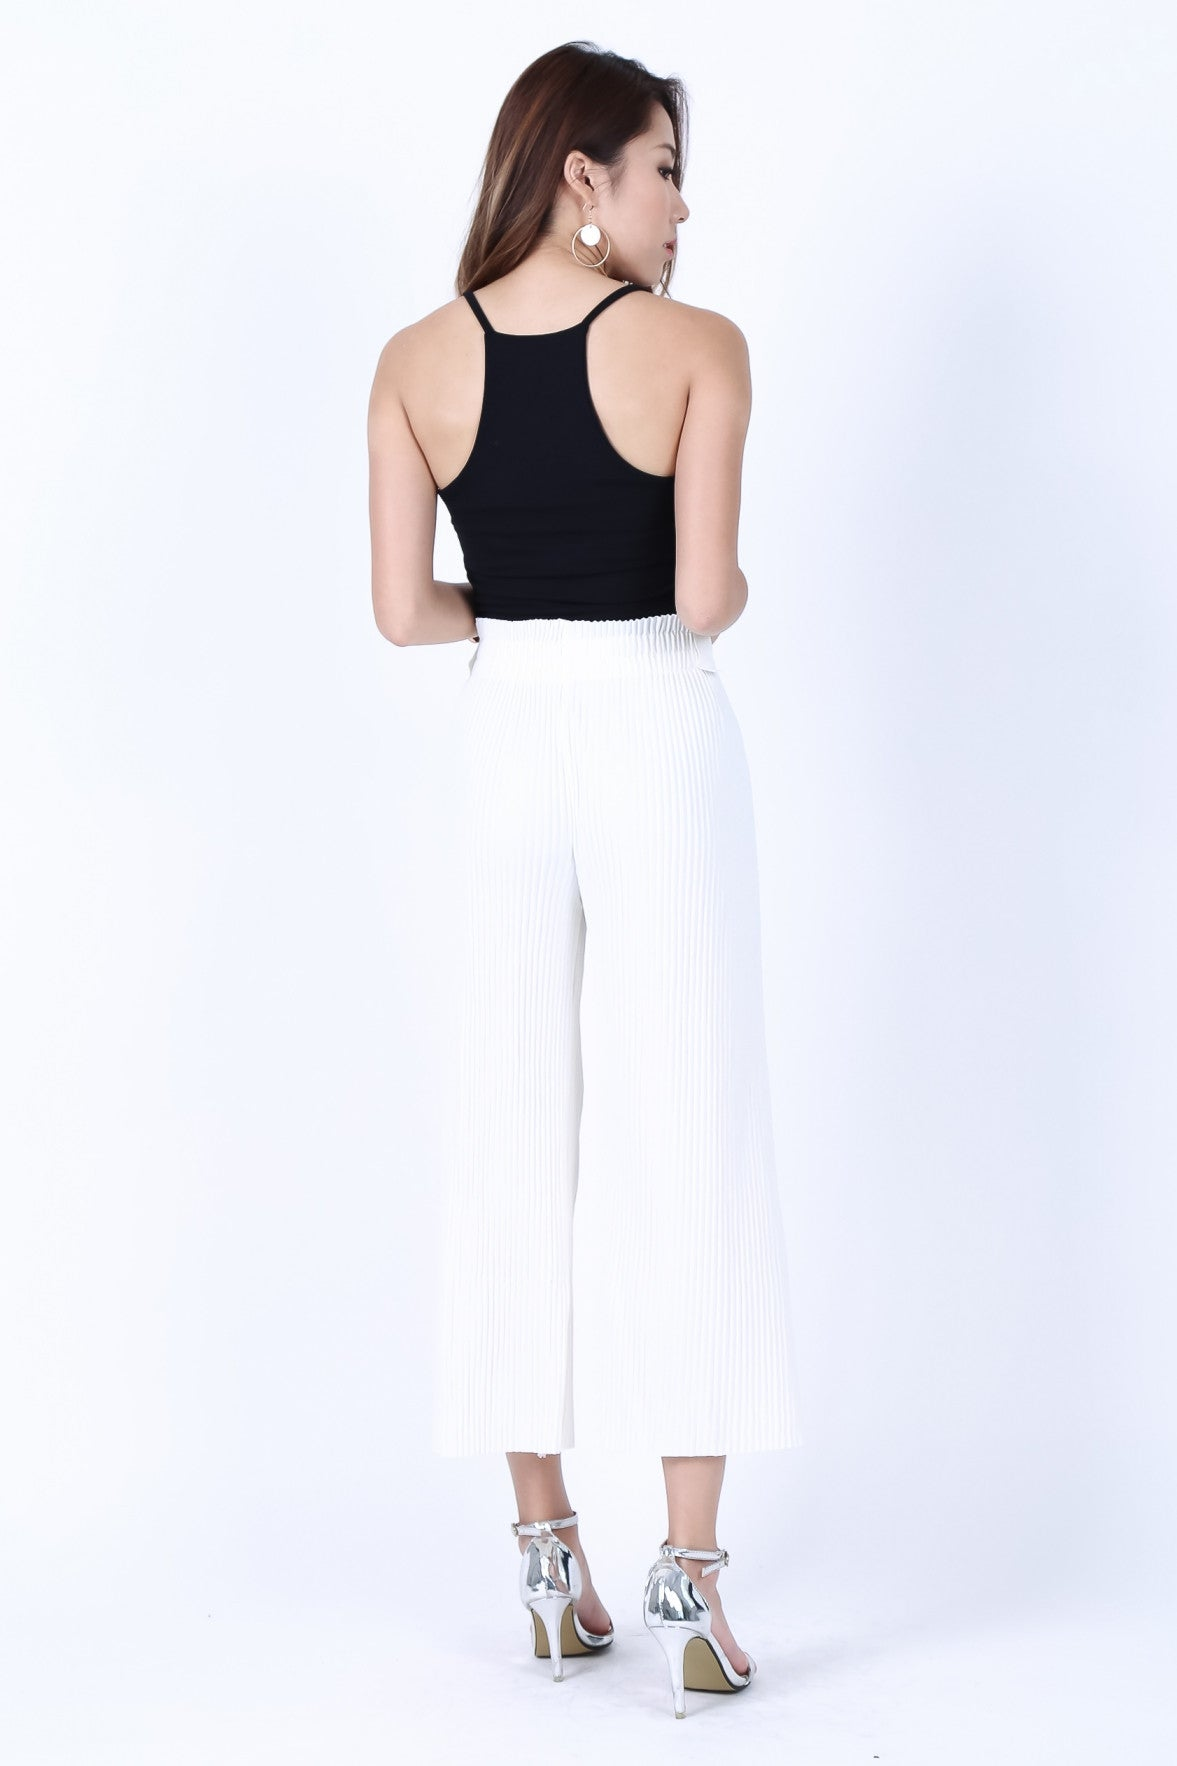 *RESTOCKED* OFF DUTY RACER BACK TOP IN BLACK - TOPAZETTE